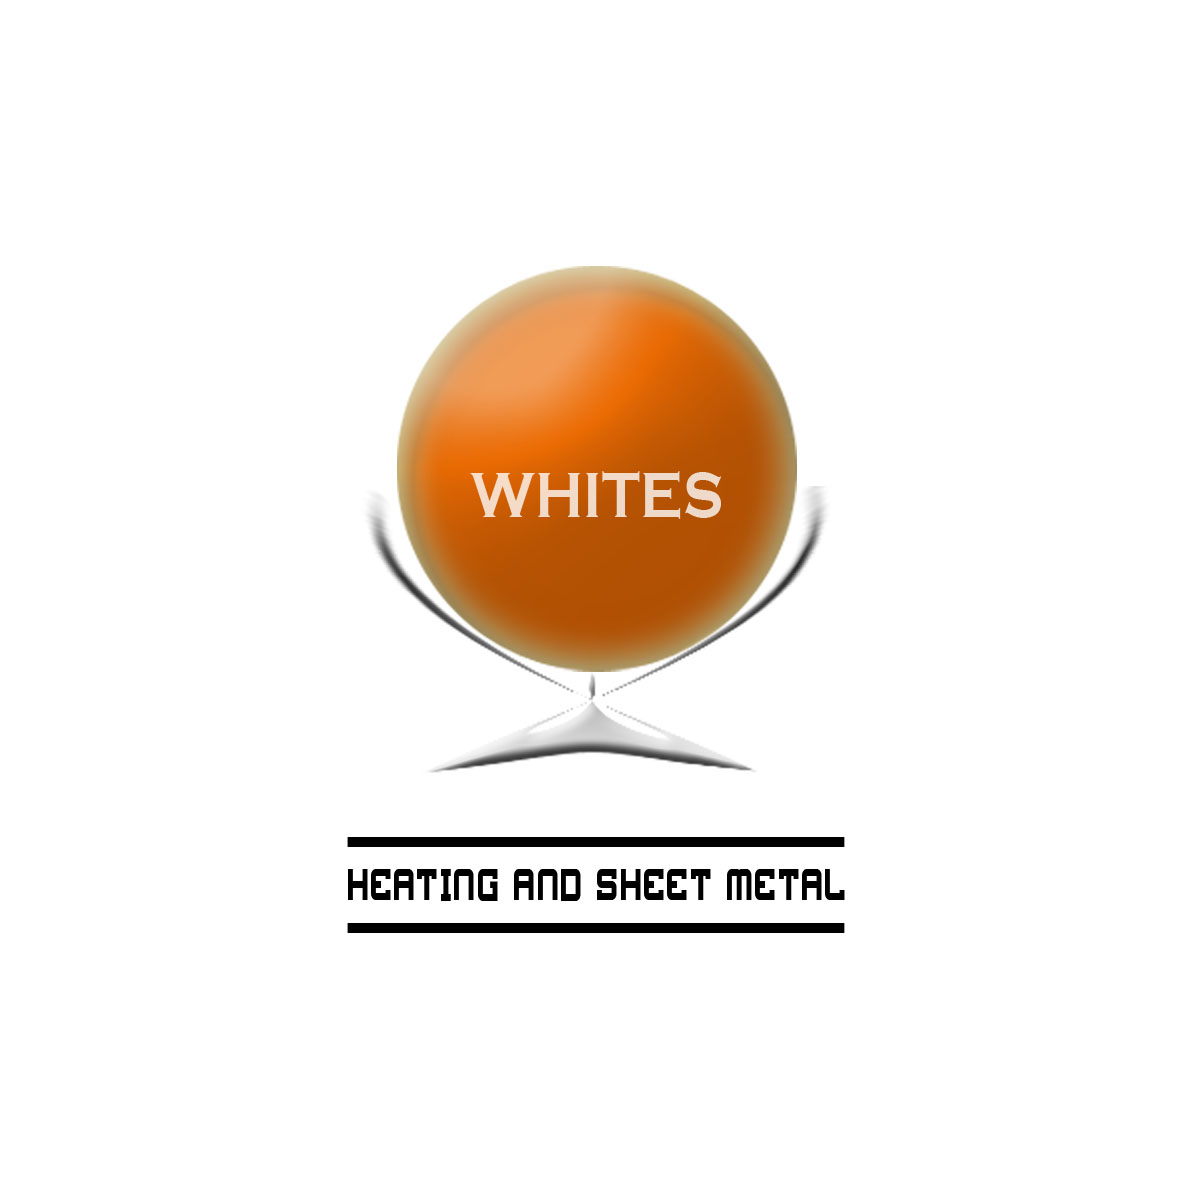 Logo Design by Moag - Entry No. 112 in the Logo Design Contest Imaginative Logo Design for White's Heating and Sheet Metal.